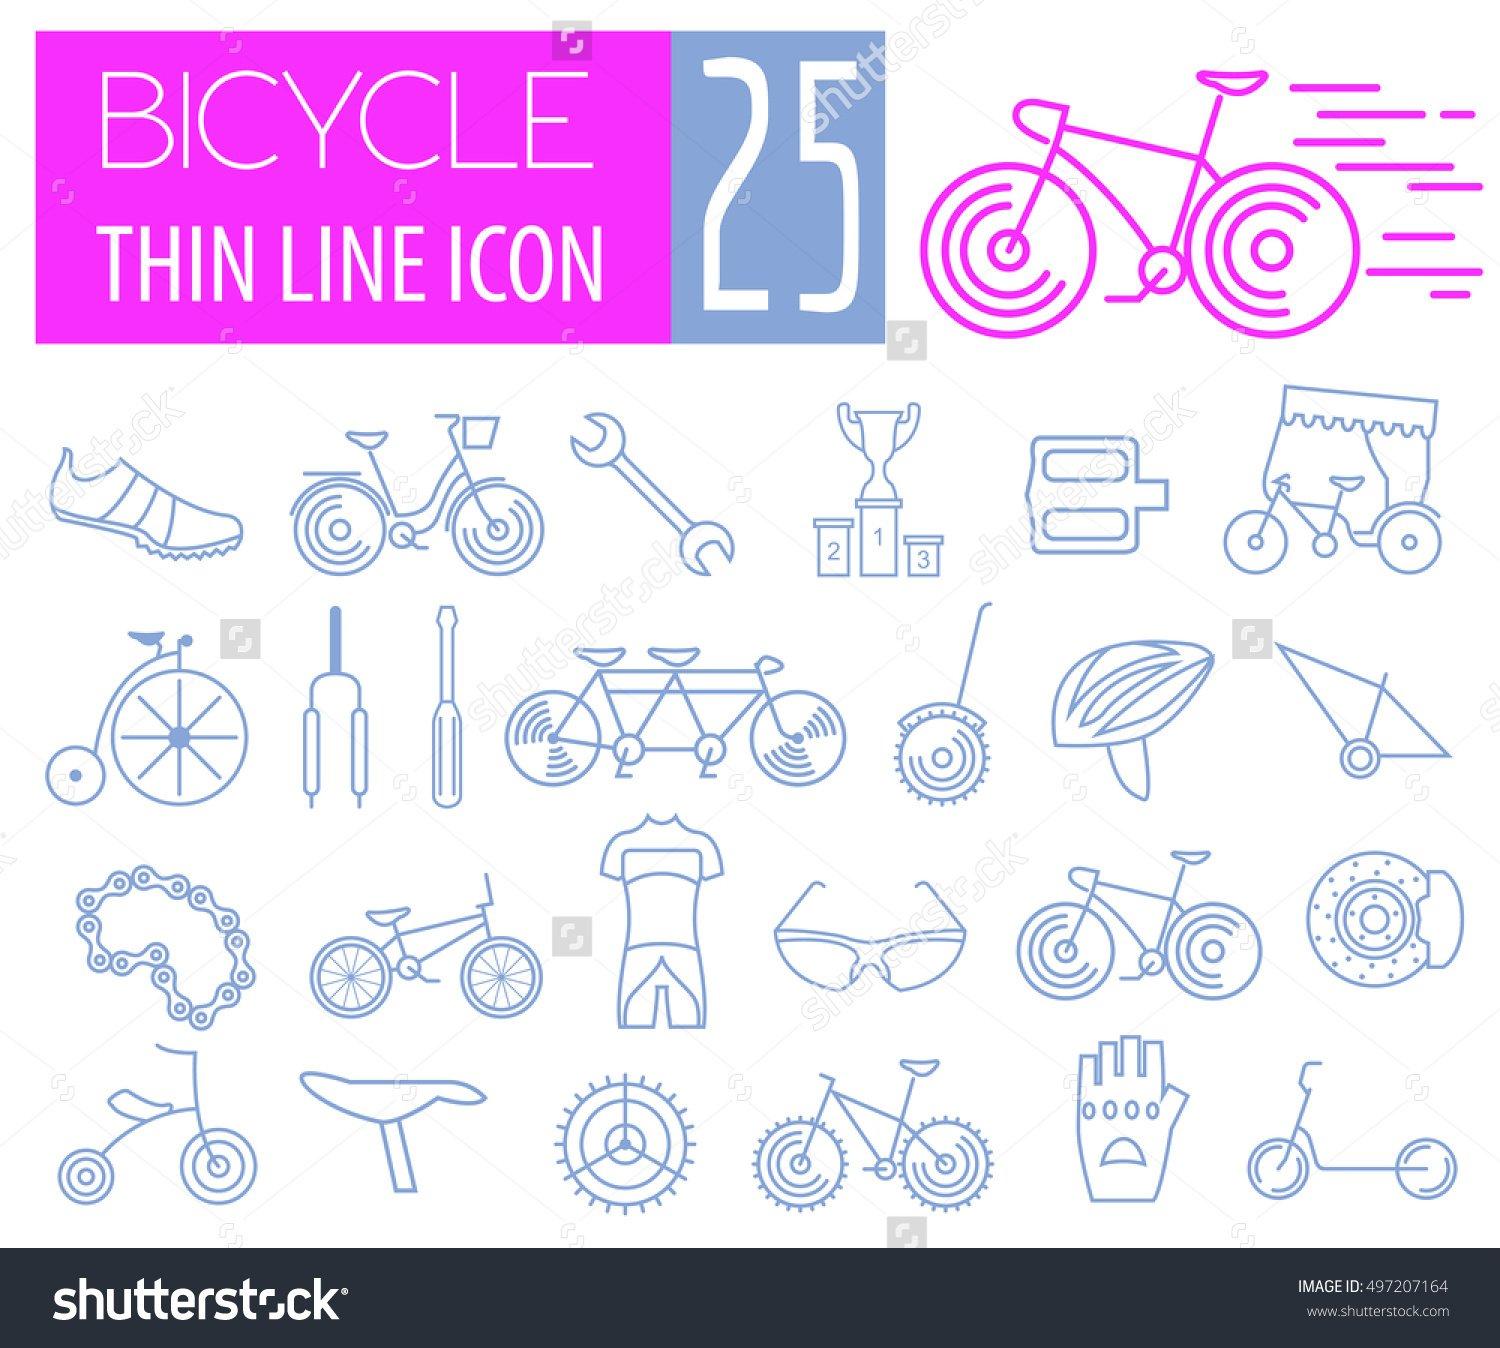 Bicycle icon set # 4